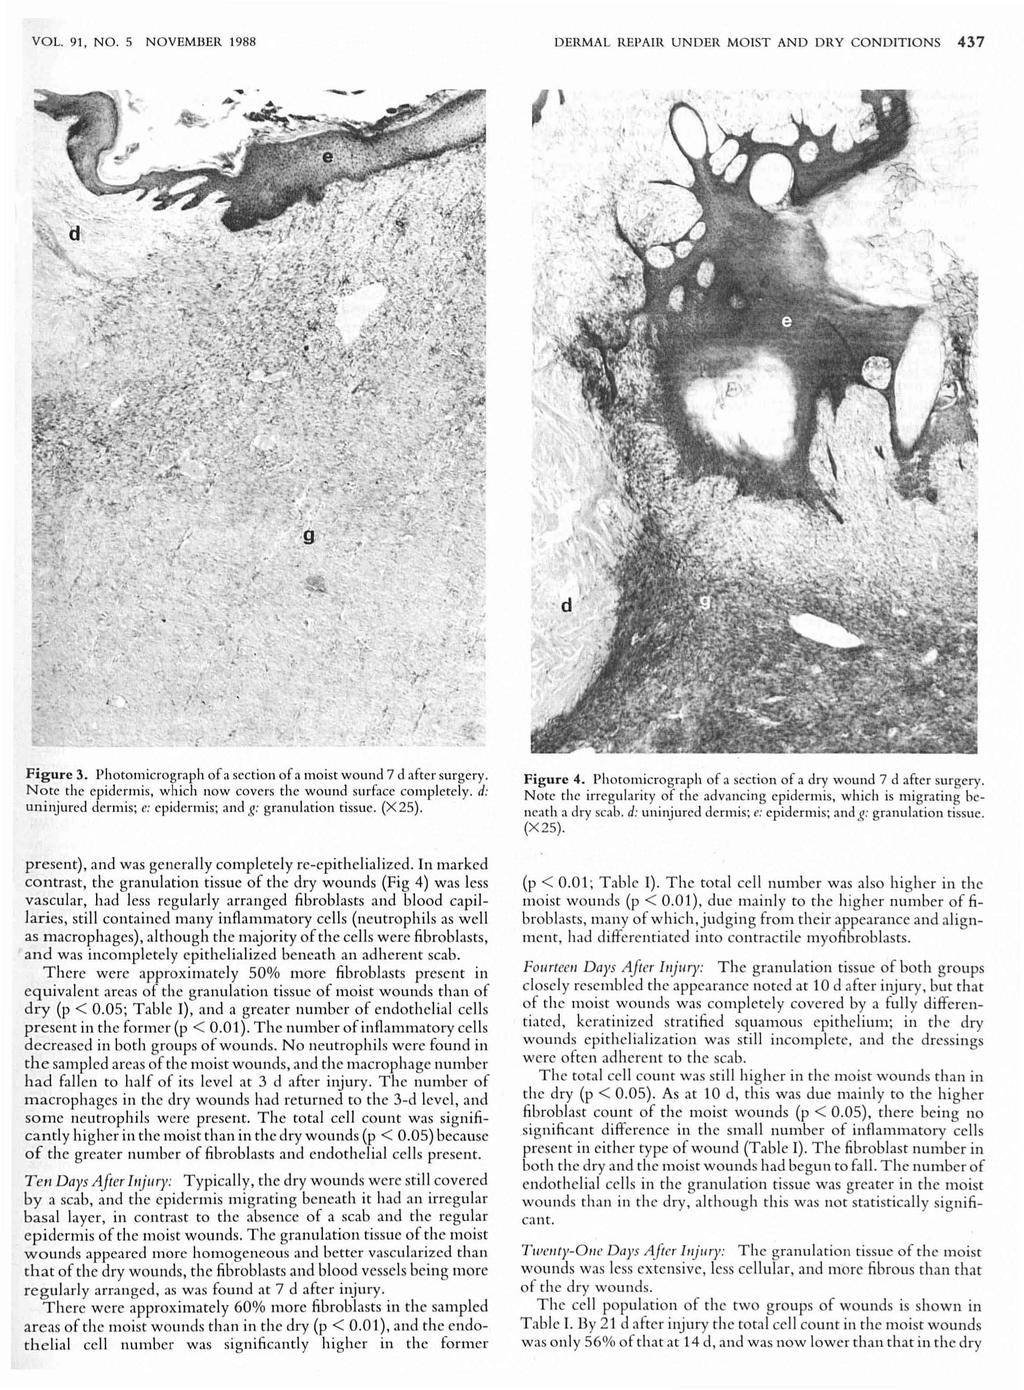 VOL. 91, NO. 5 NOVEMBER 1988 DERMAL REPAlR UNDER MO IST AND DRY CONDITIONS 437 Figure 3. Photomicrograph of a secti on of a moist wound 7 d after surgery.